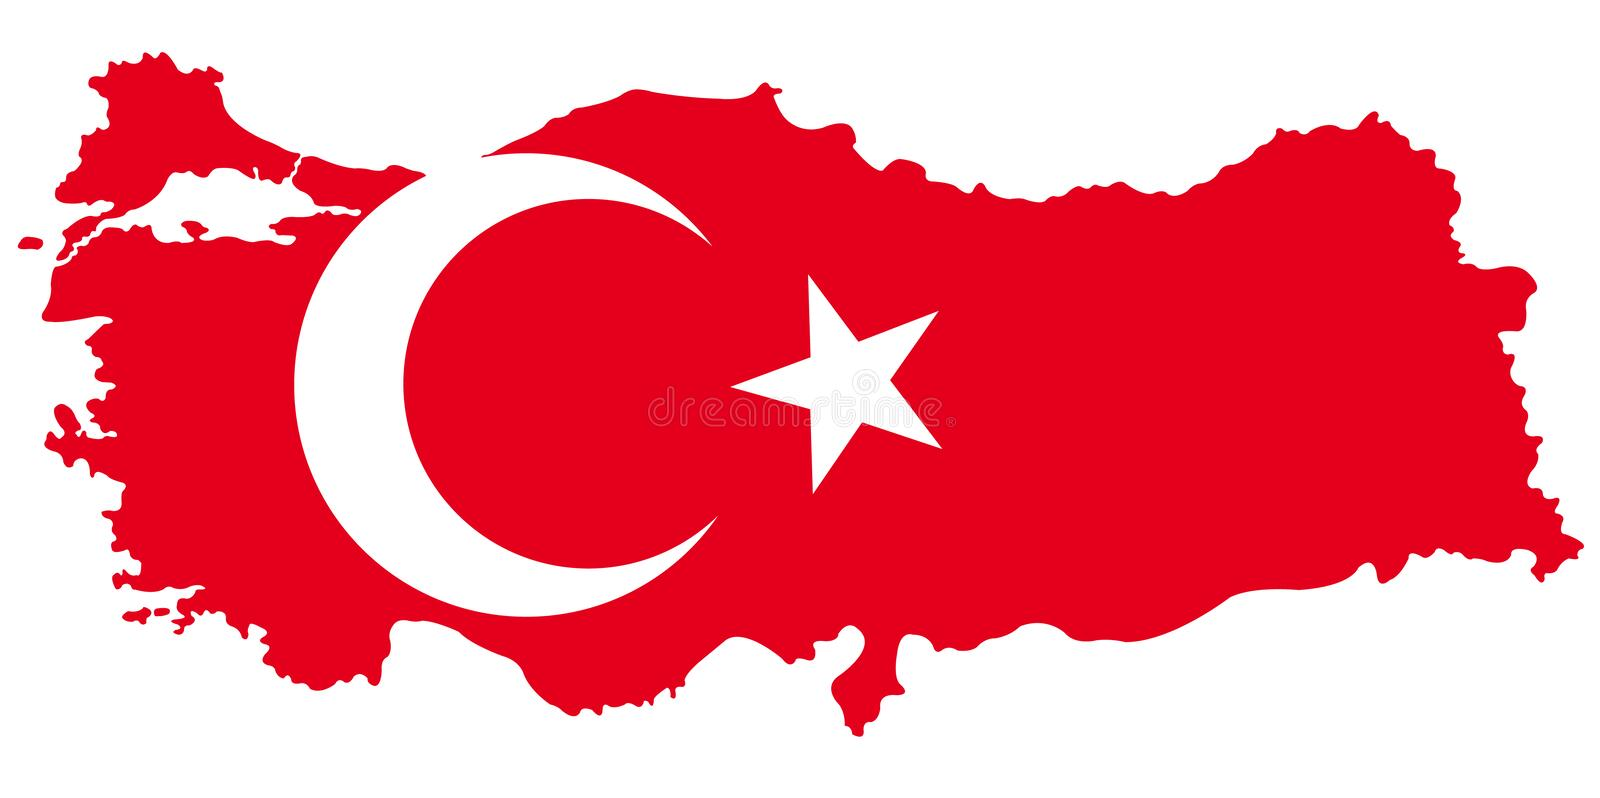 Turkey map and flag - transcontinental country in Eurasia vector illustration